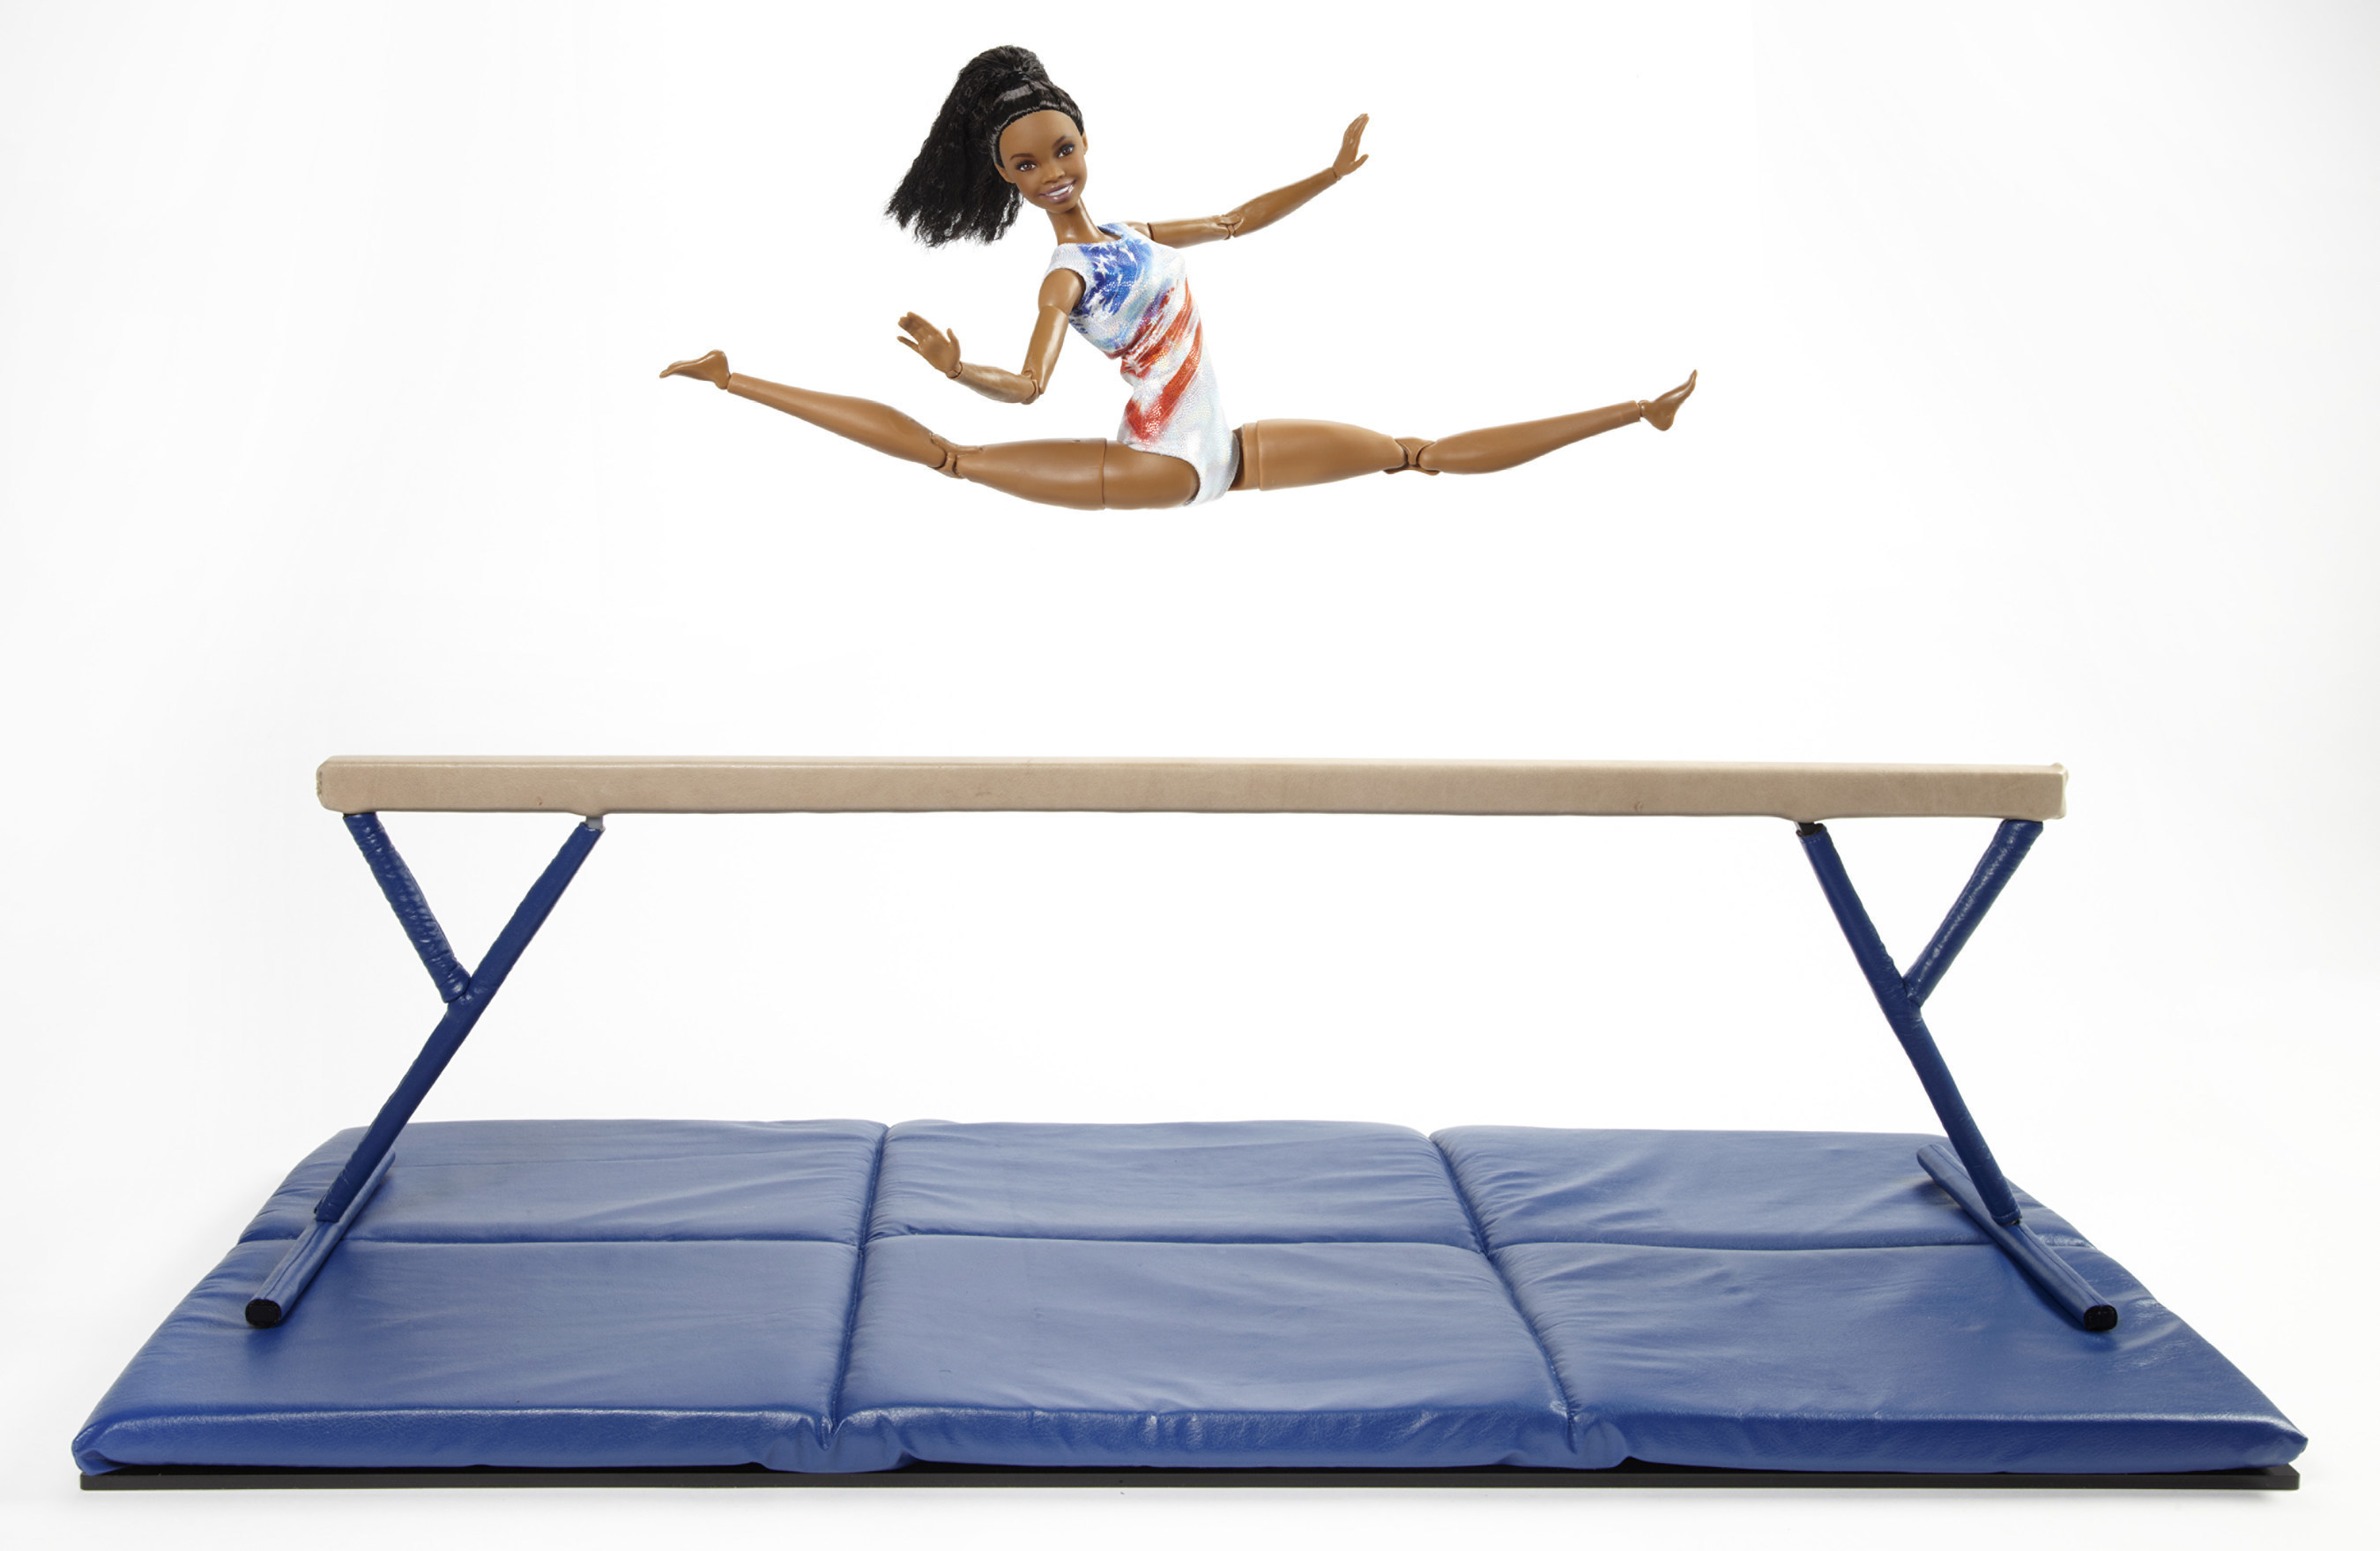 """Barbie honors Gabby Douglas, 2016 U.S. Olympic Gymnastics team member and two time 2012 Olympic gold medalist, with a one-of-a-kind Barbie doll in her likeness for inspiring girls. Douglas is honored as the most recent Barbie """"Shero,"""" a female hero inspiring the next generation of girls that they can be anything."""